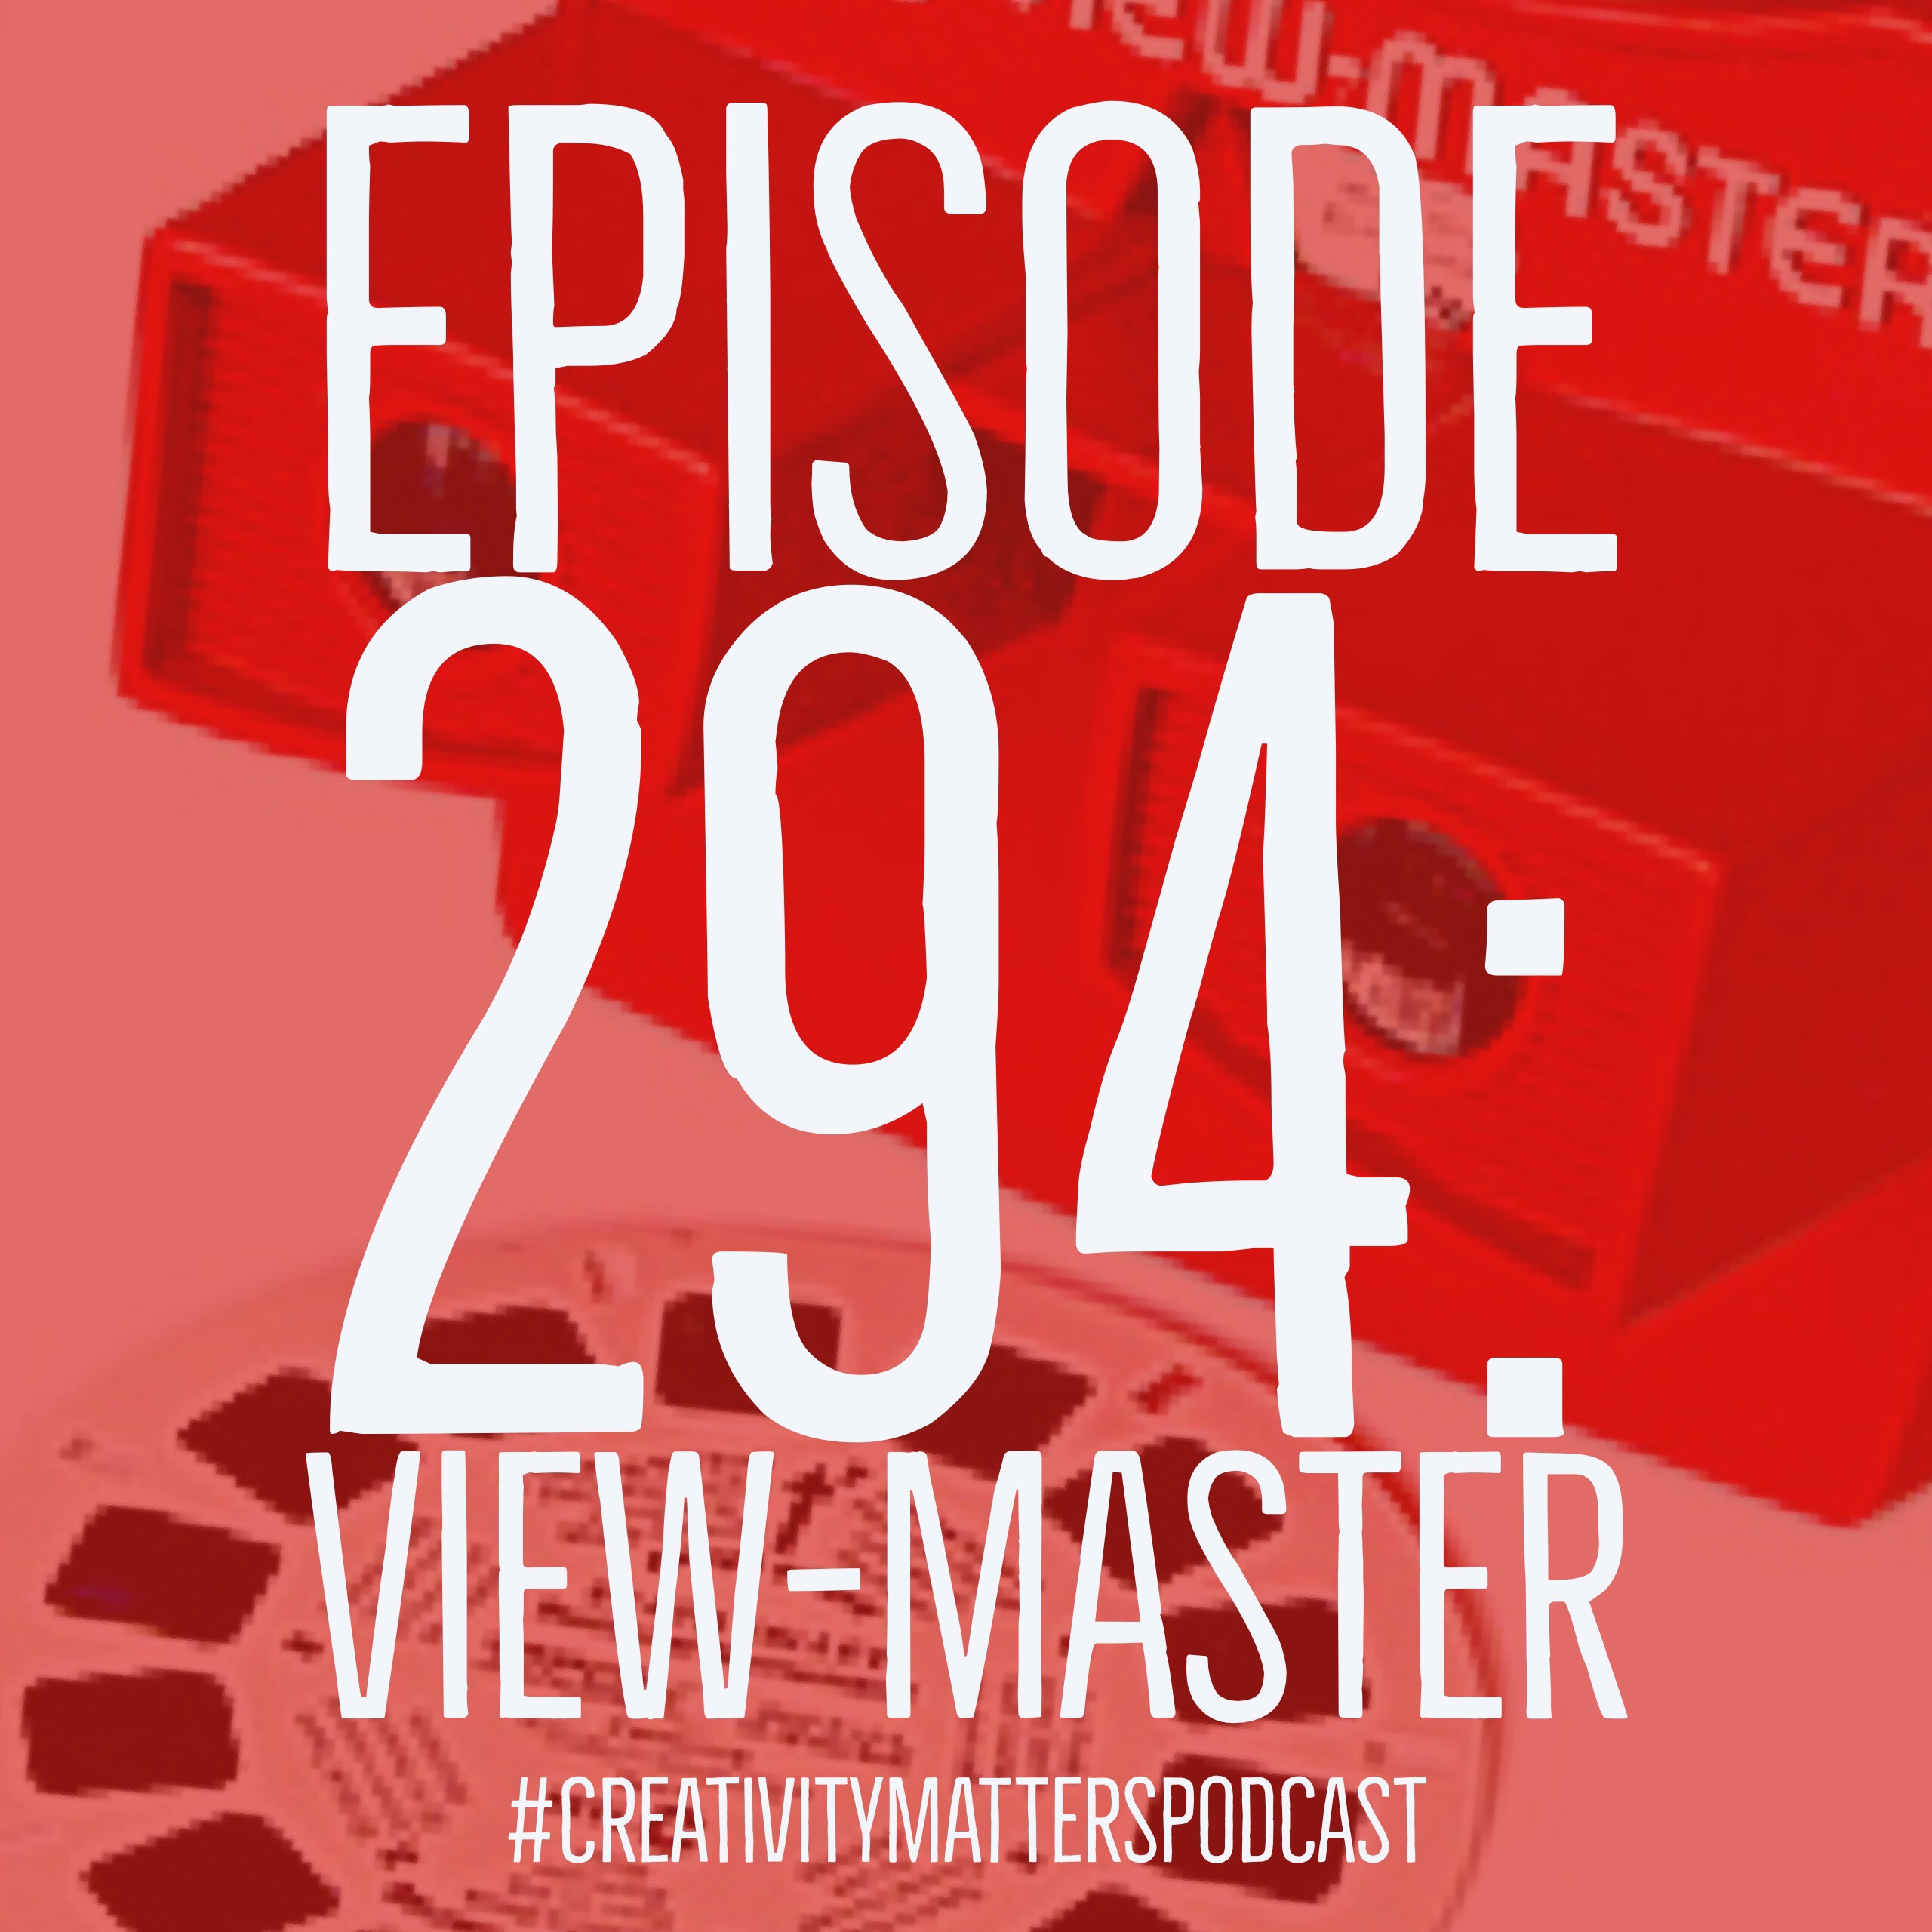 Episode 294: View-Master